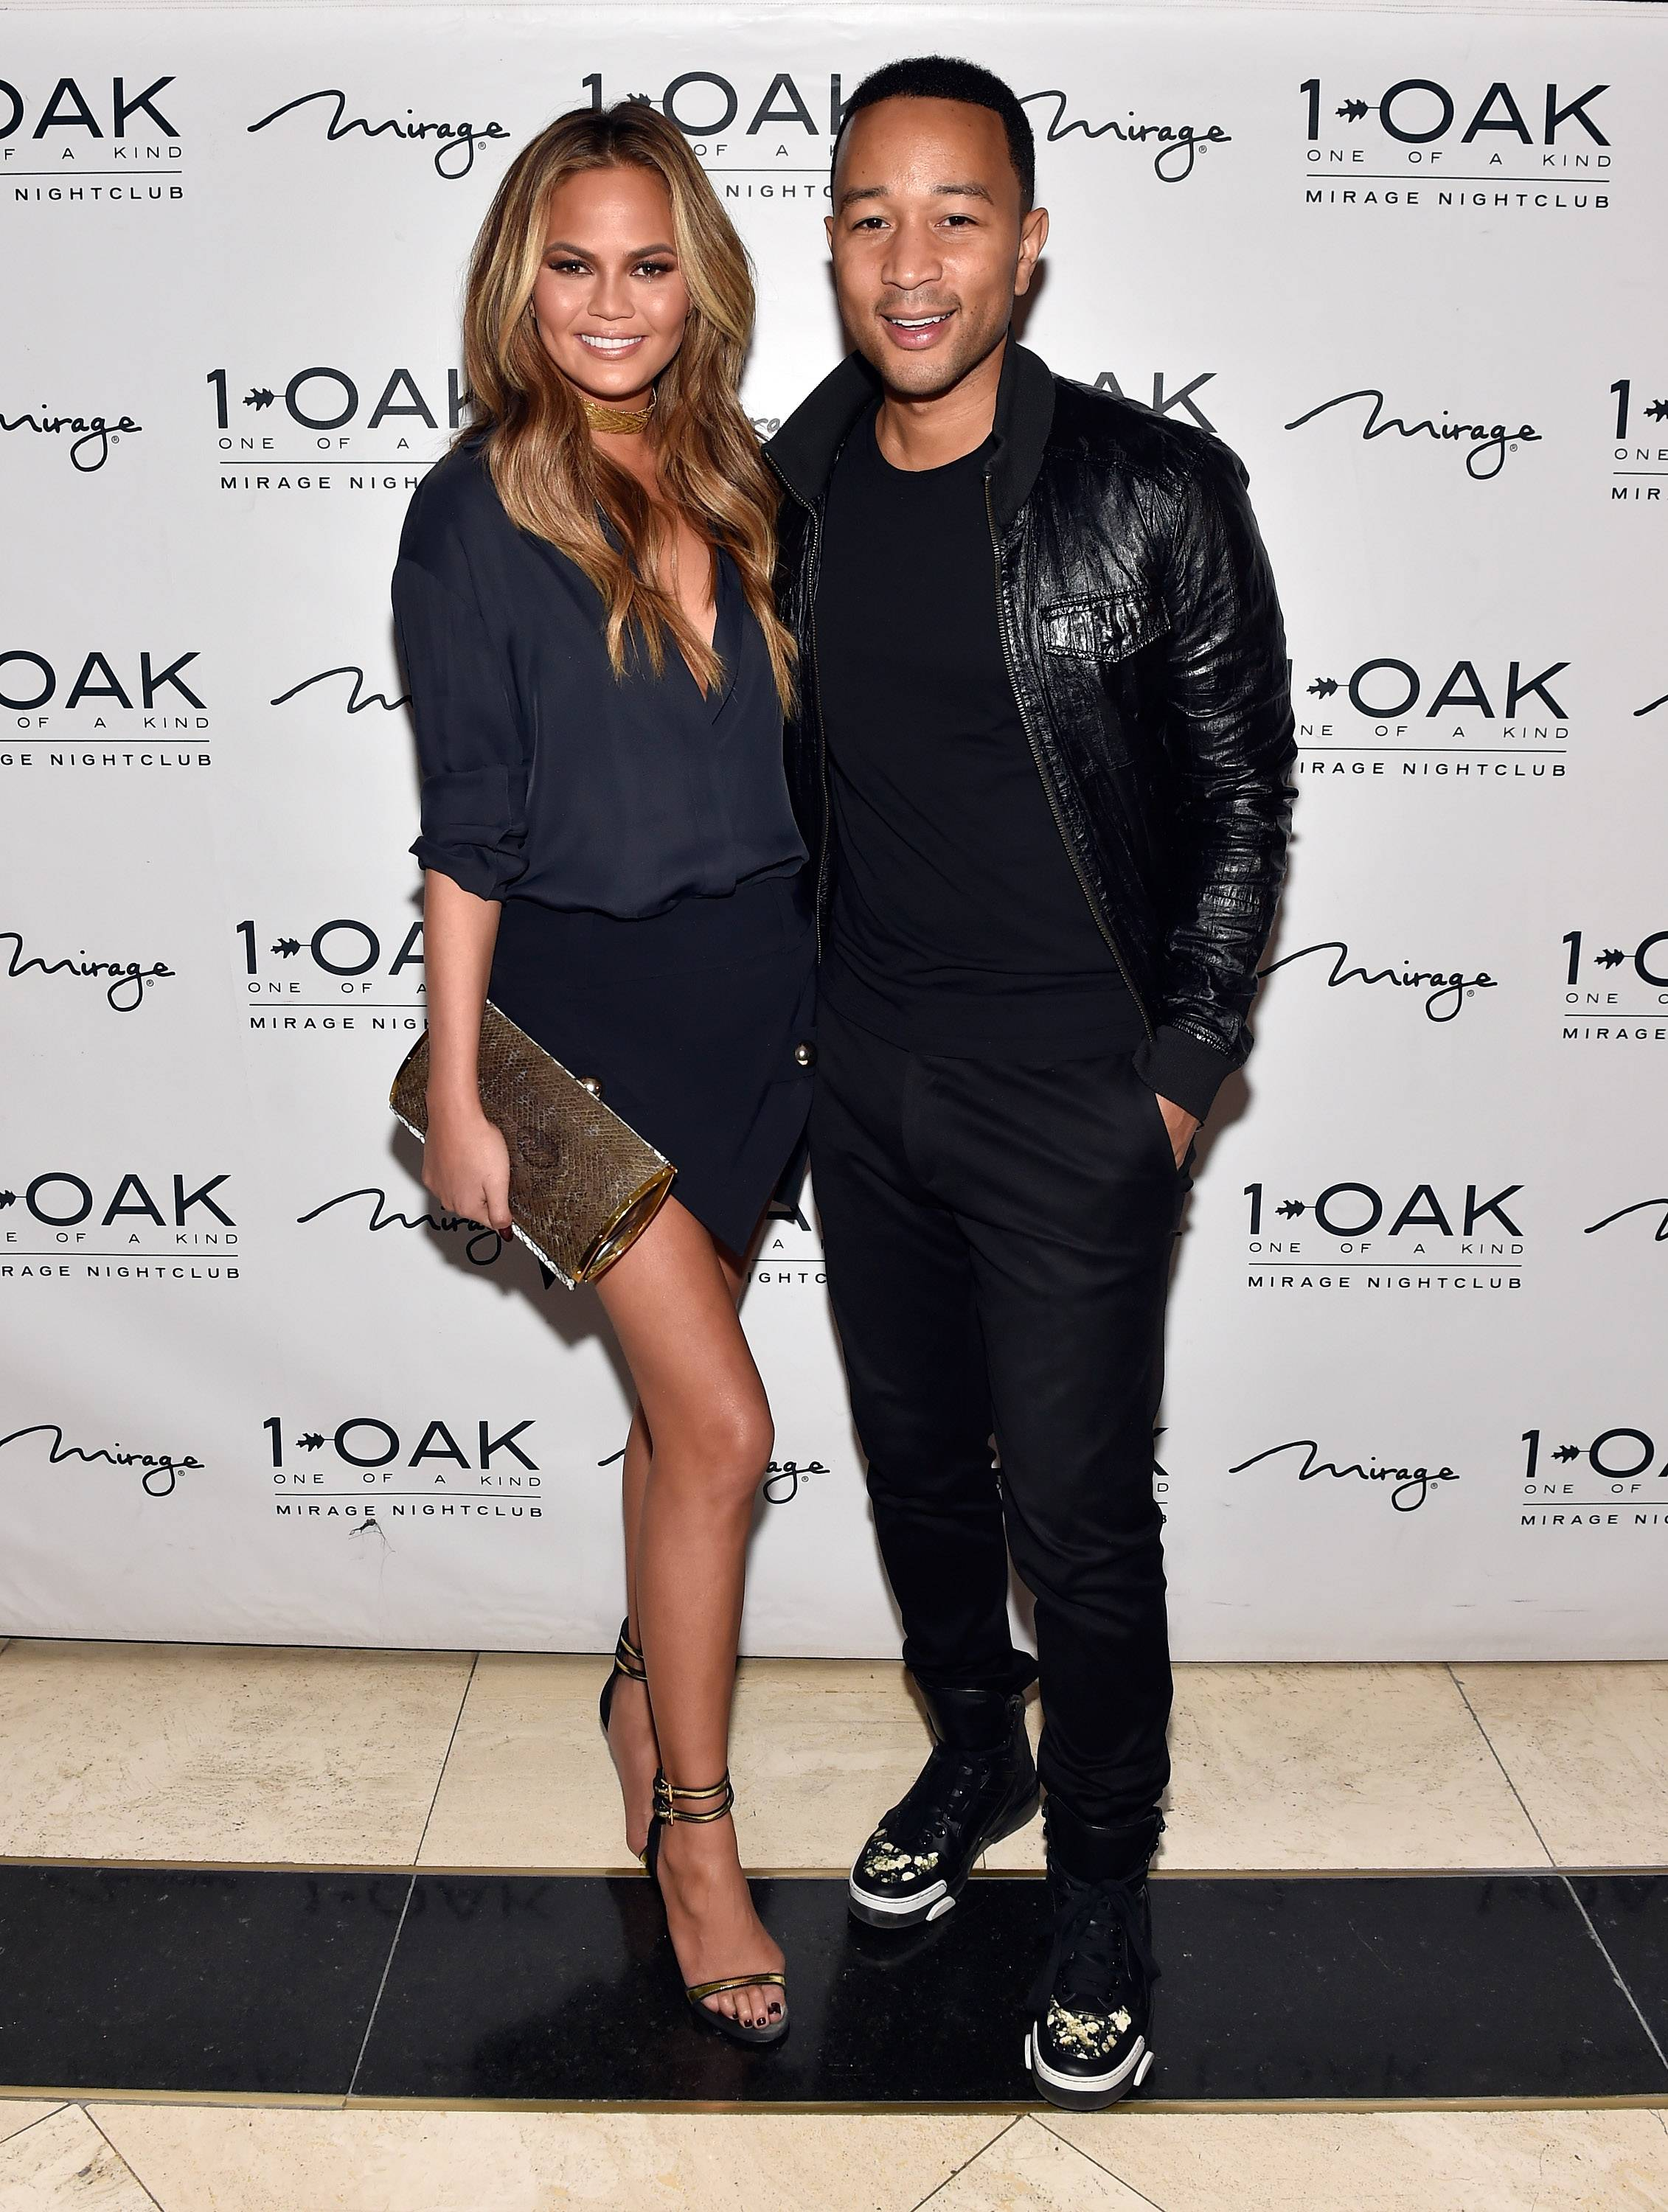 LAS VEGAS, NV - MAY 16:  Model Chrissy Teigen (L) and singer John Legend arrive at 1 OAK Nightclub at The Mirage Hotel & Casino for a special Pre-Billboard Music Award celebration on May 16, 2015 in Las Vegas, Nevada.  (Photo by David Becker/WireImage) *** Local Caption *** Chrissy Teigen; John Legend